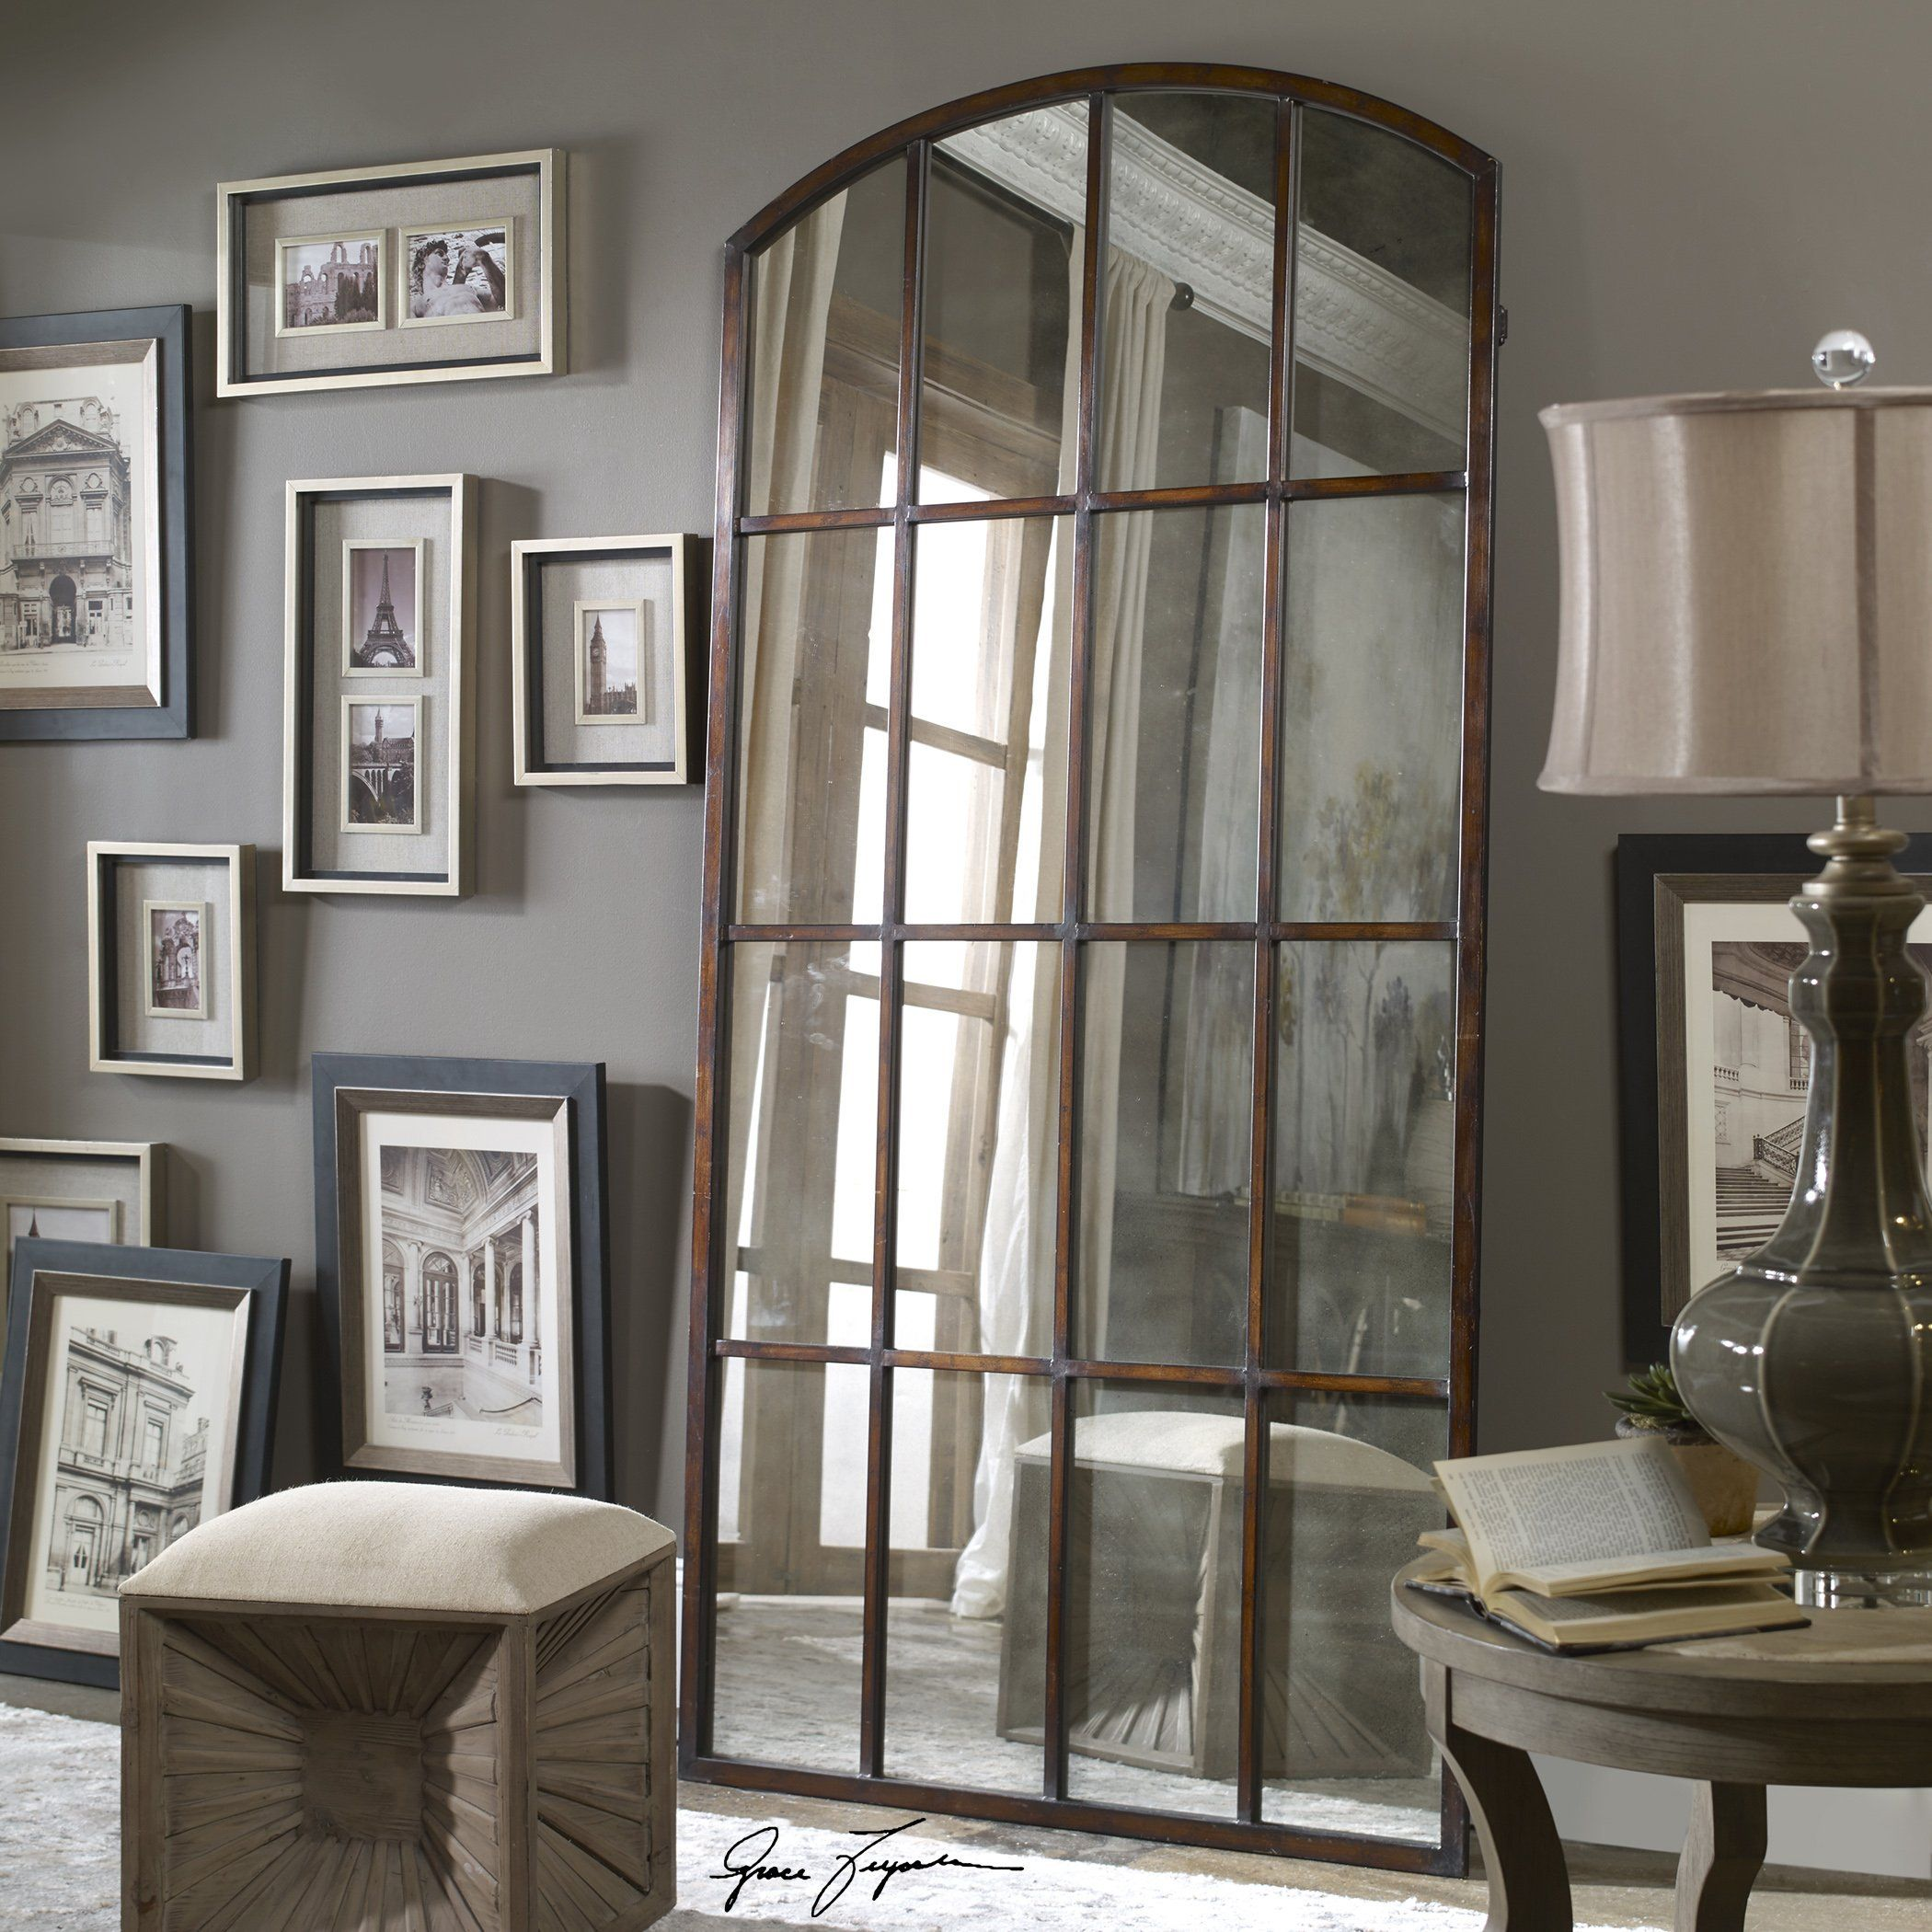 Whether You Are Decorating A Bedroom Or A Living Room,